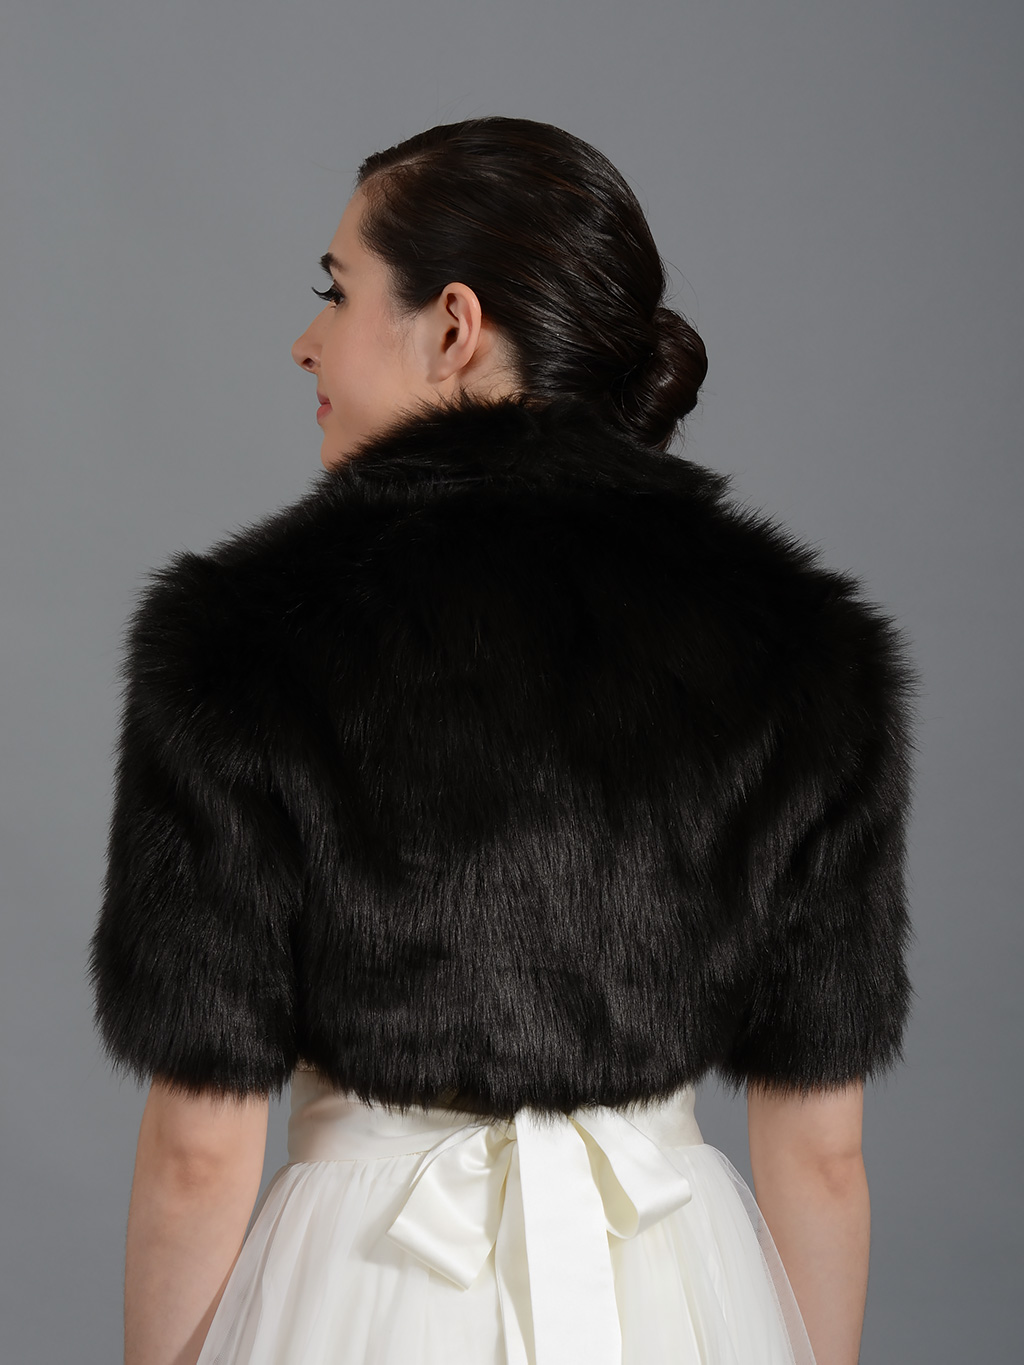 You searched for: fur bolero jacket! Etsy is the home to thousands of handmade, vintage, and one-of-a-kind products and gifts related to your search. No matter what you're looking for or where you are in the world, our global marketplace of sellers can help you find unique and affordable options.